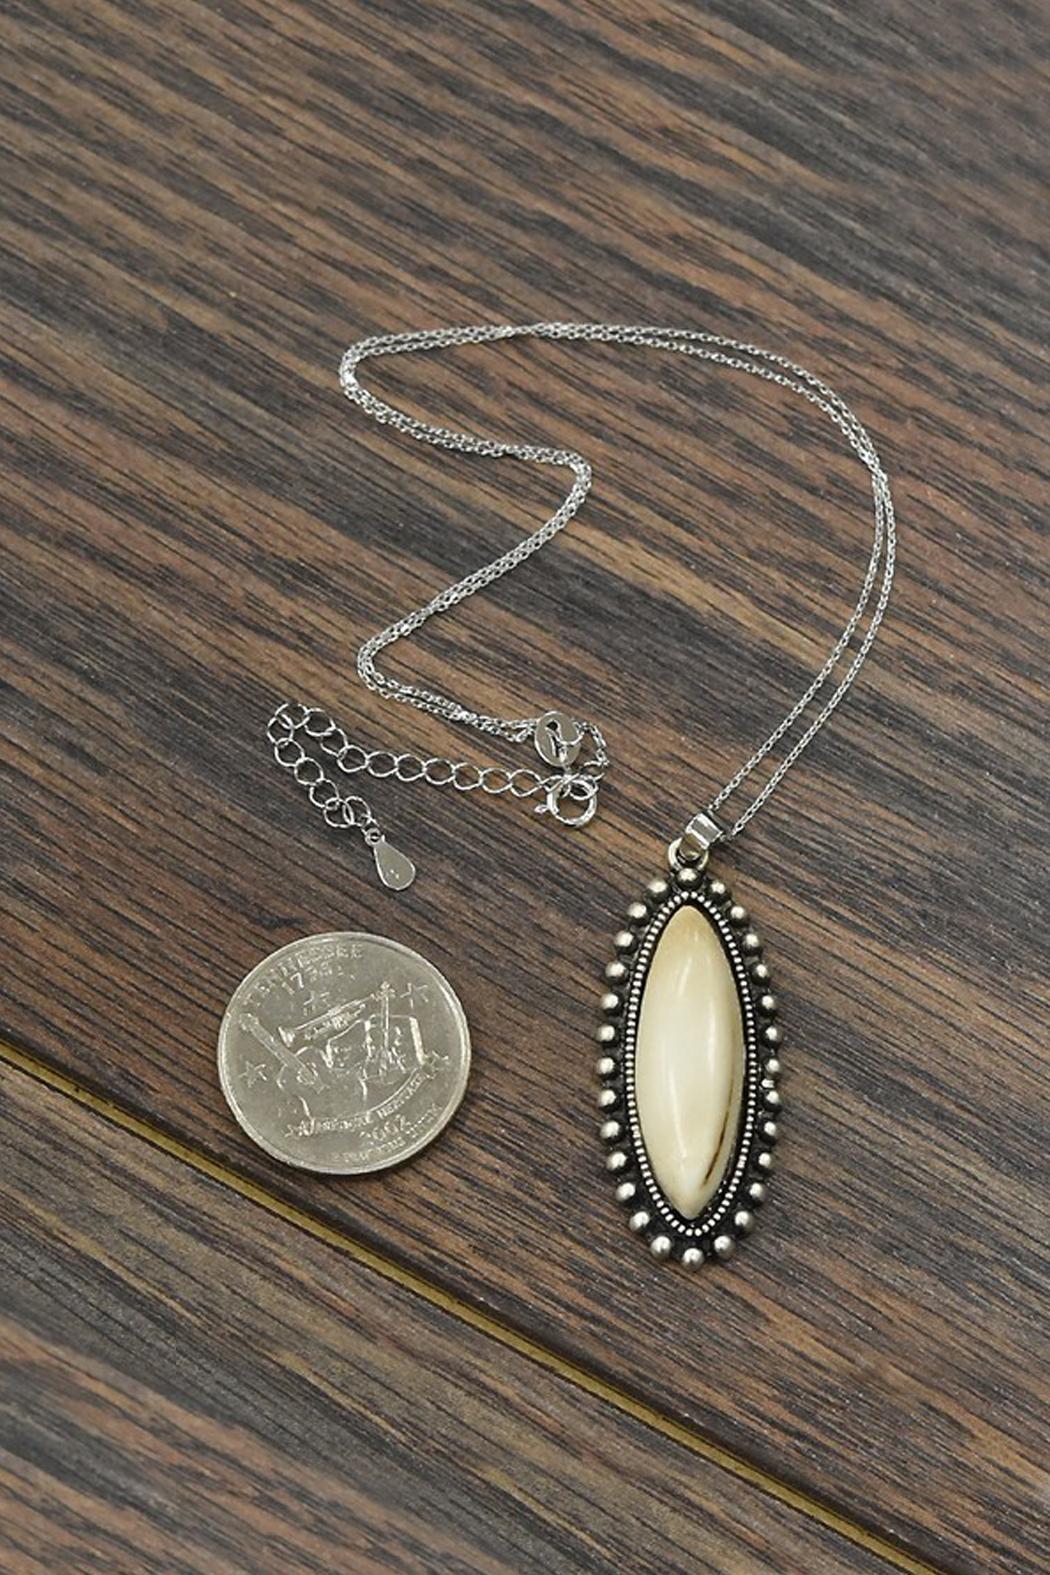 JChronicles Sterling-Silver-Chain-Necklace With Natural-White-Turquoise-Pendant - Front Full Image